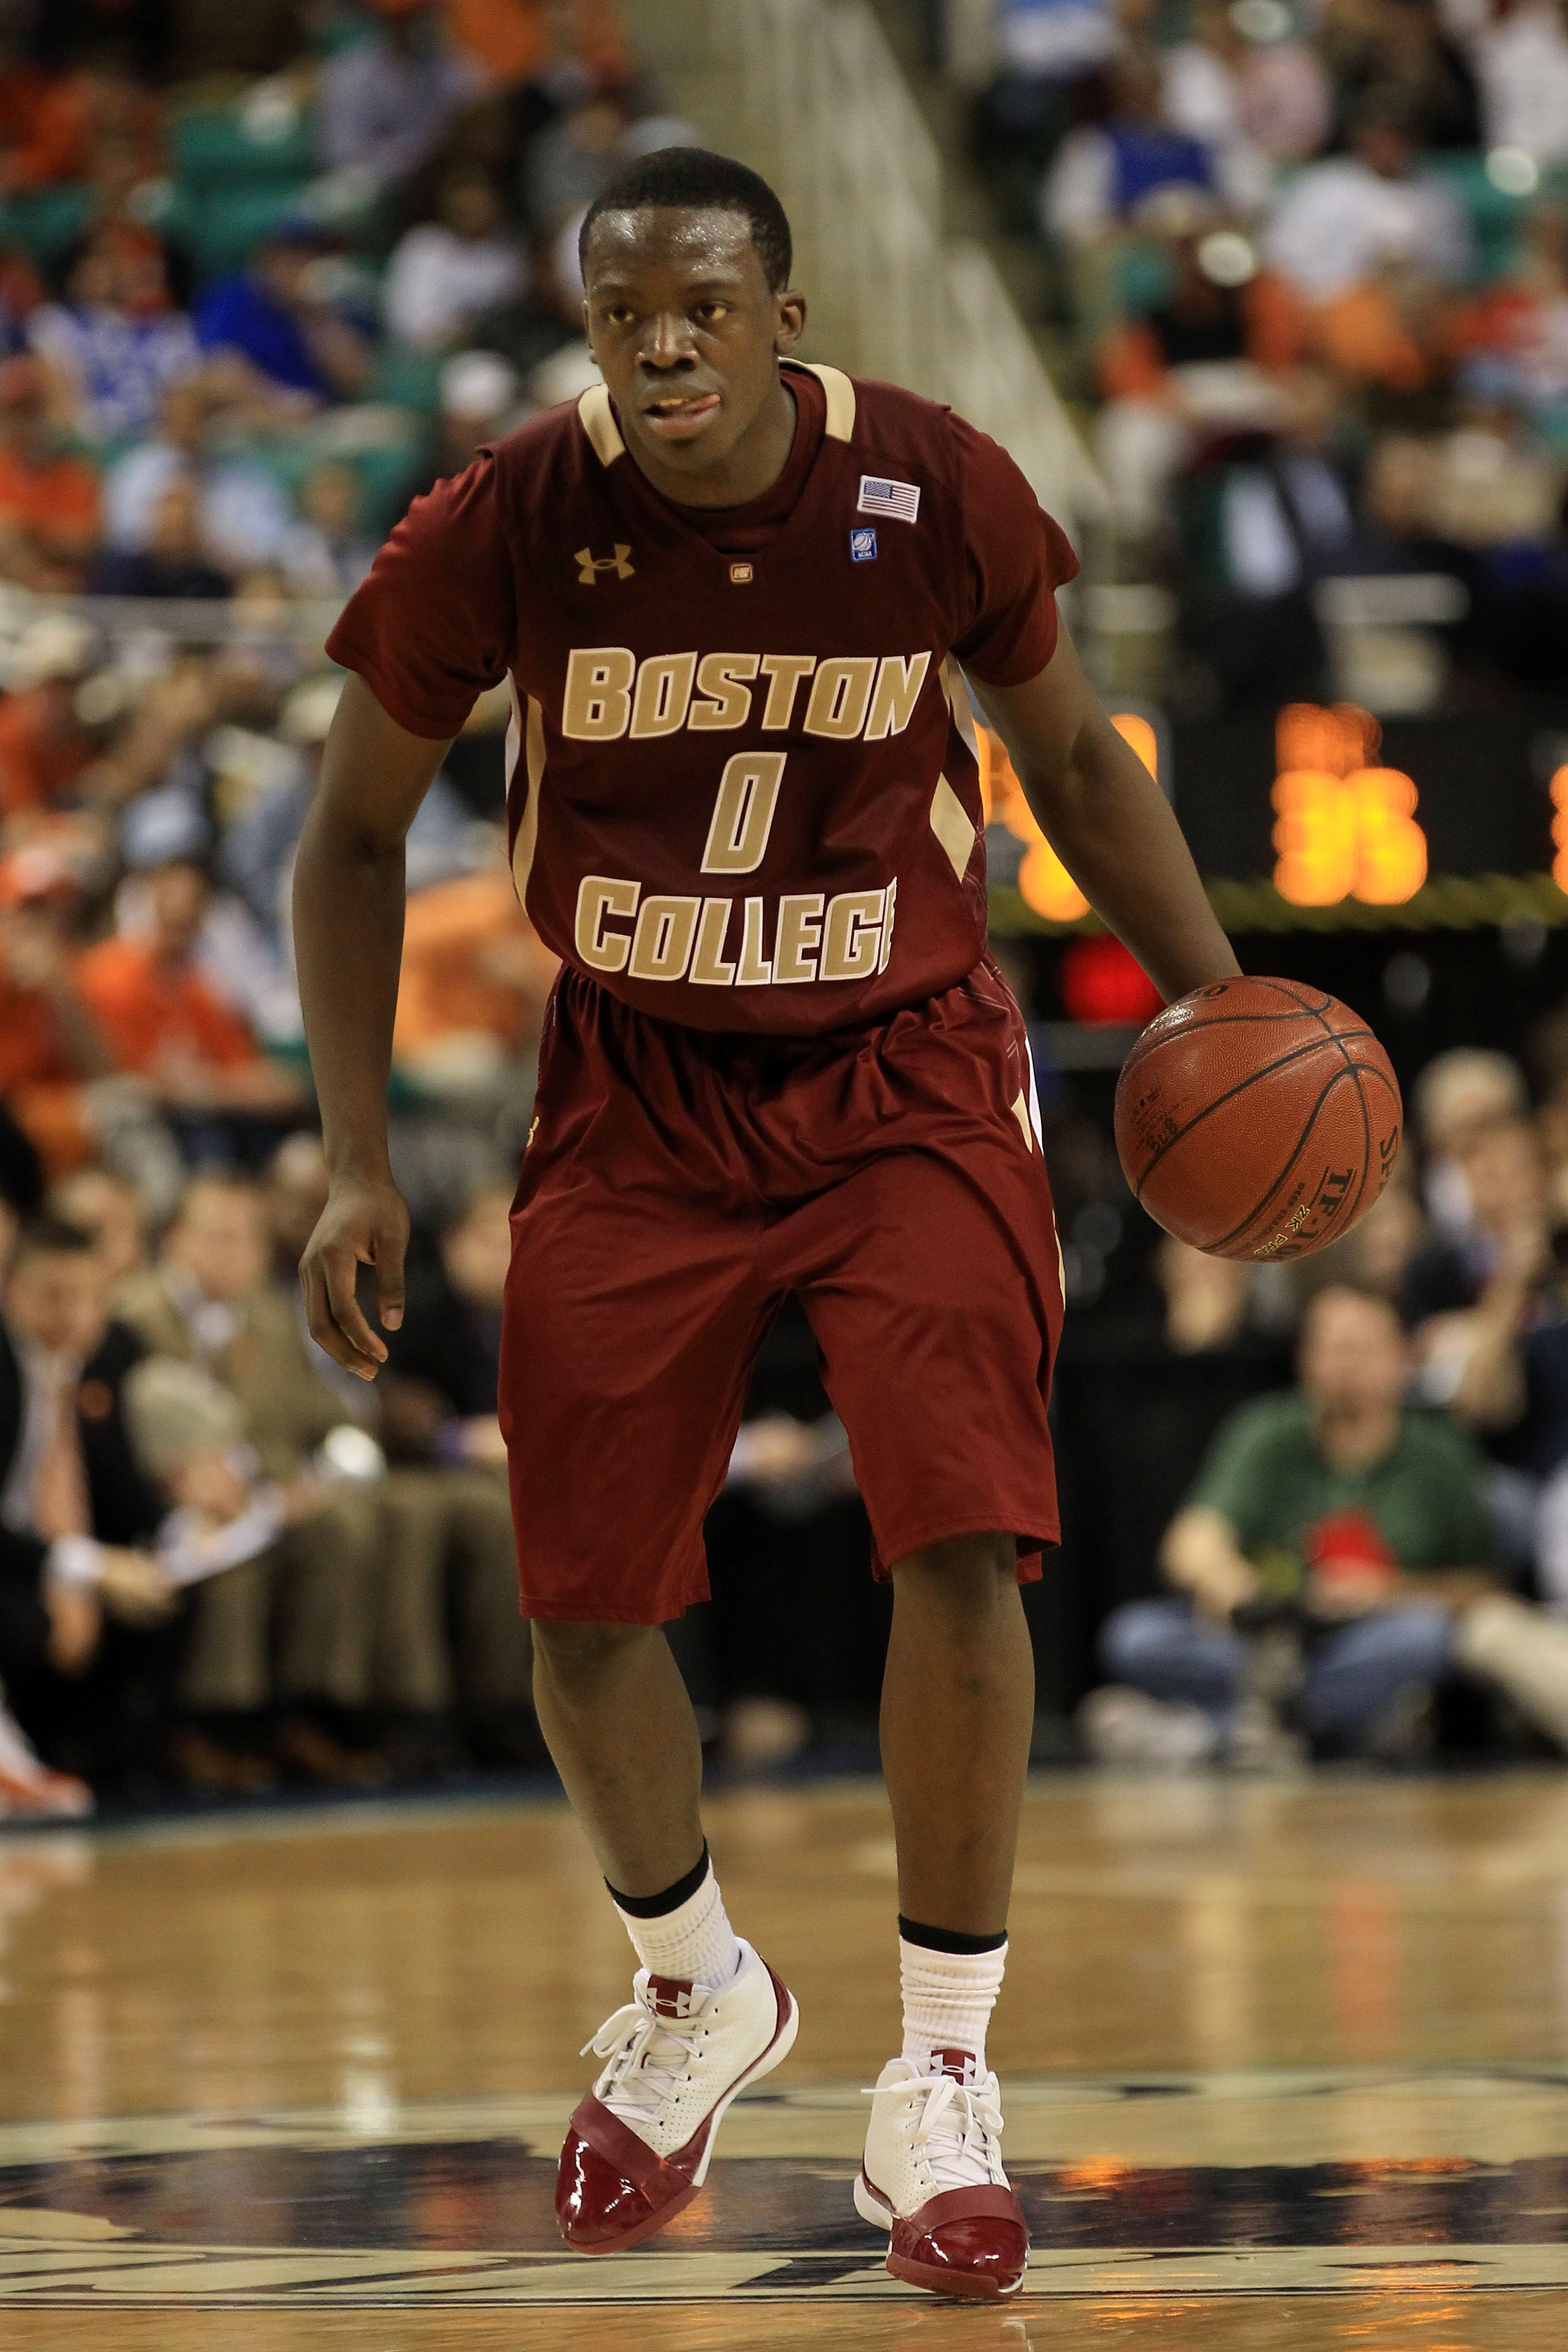 GREENSBORO, NC - MARCH 11:  Reggie Jackson #0 of the Boston College Eagles moves the ball against the Clemson Tigers during the second half in the quarterfinals of the 2011 ACC men's basketball tournament at the Greensboro Coliseum on March 11, 2011 in Gr